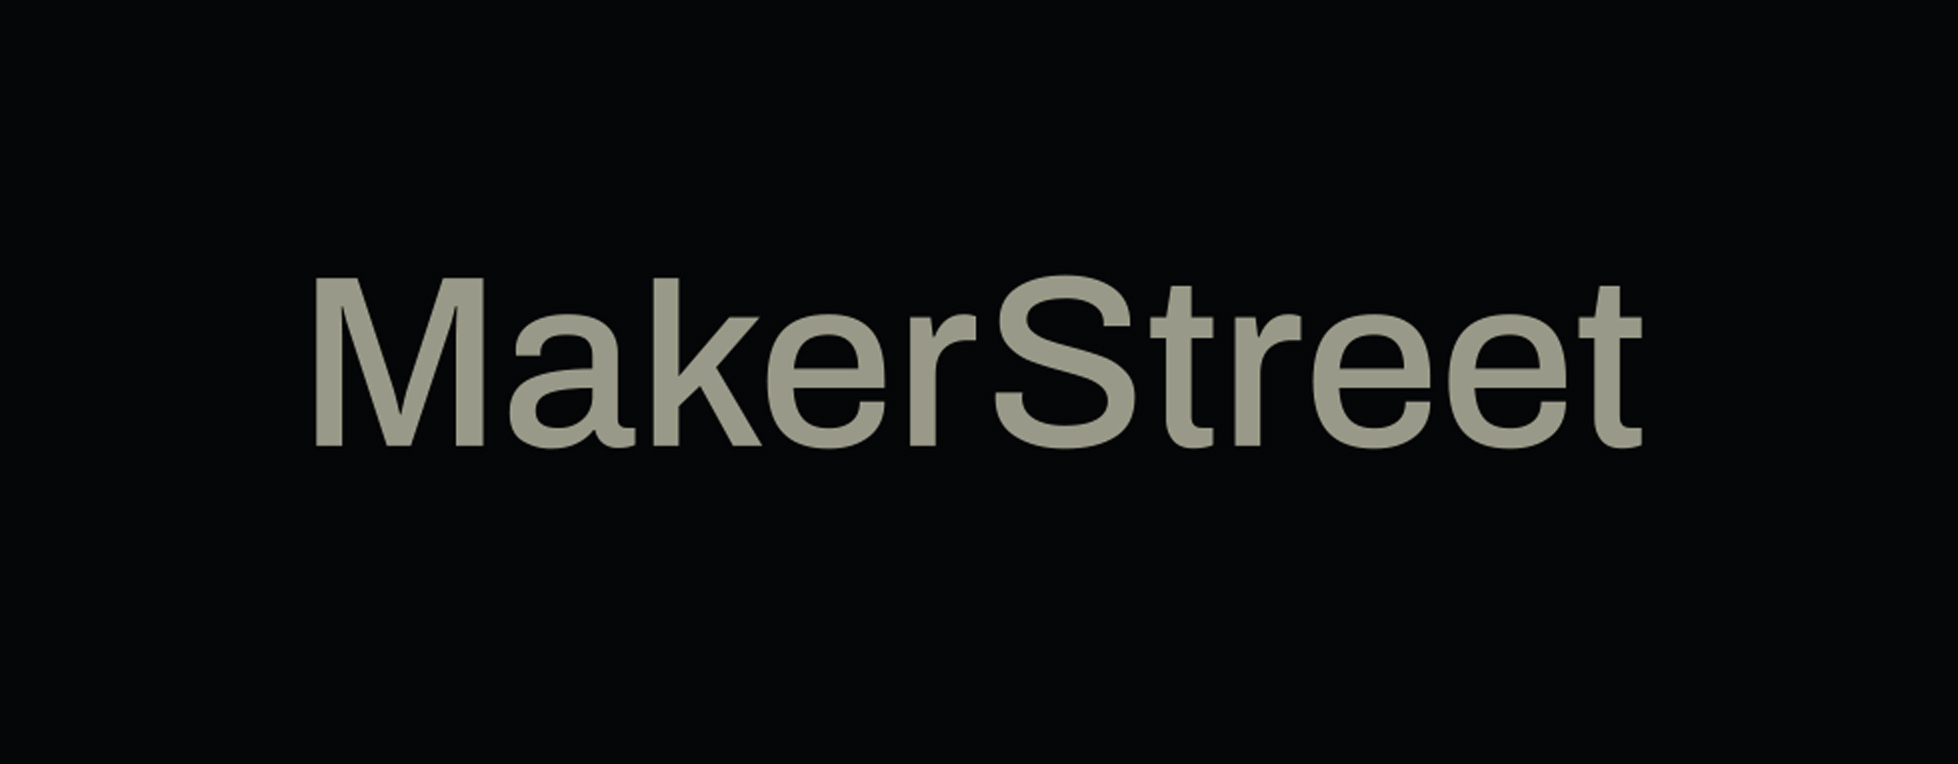 Brisbane/Melbourne-based creative agency Hatchet Agency rebrands to MakerStreet